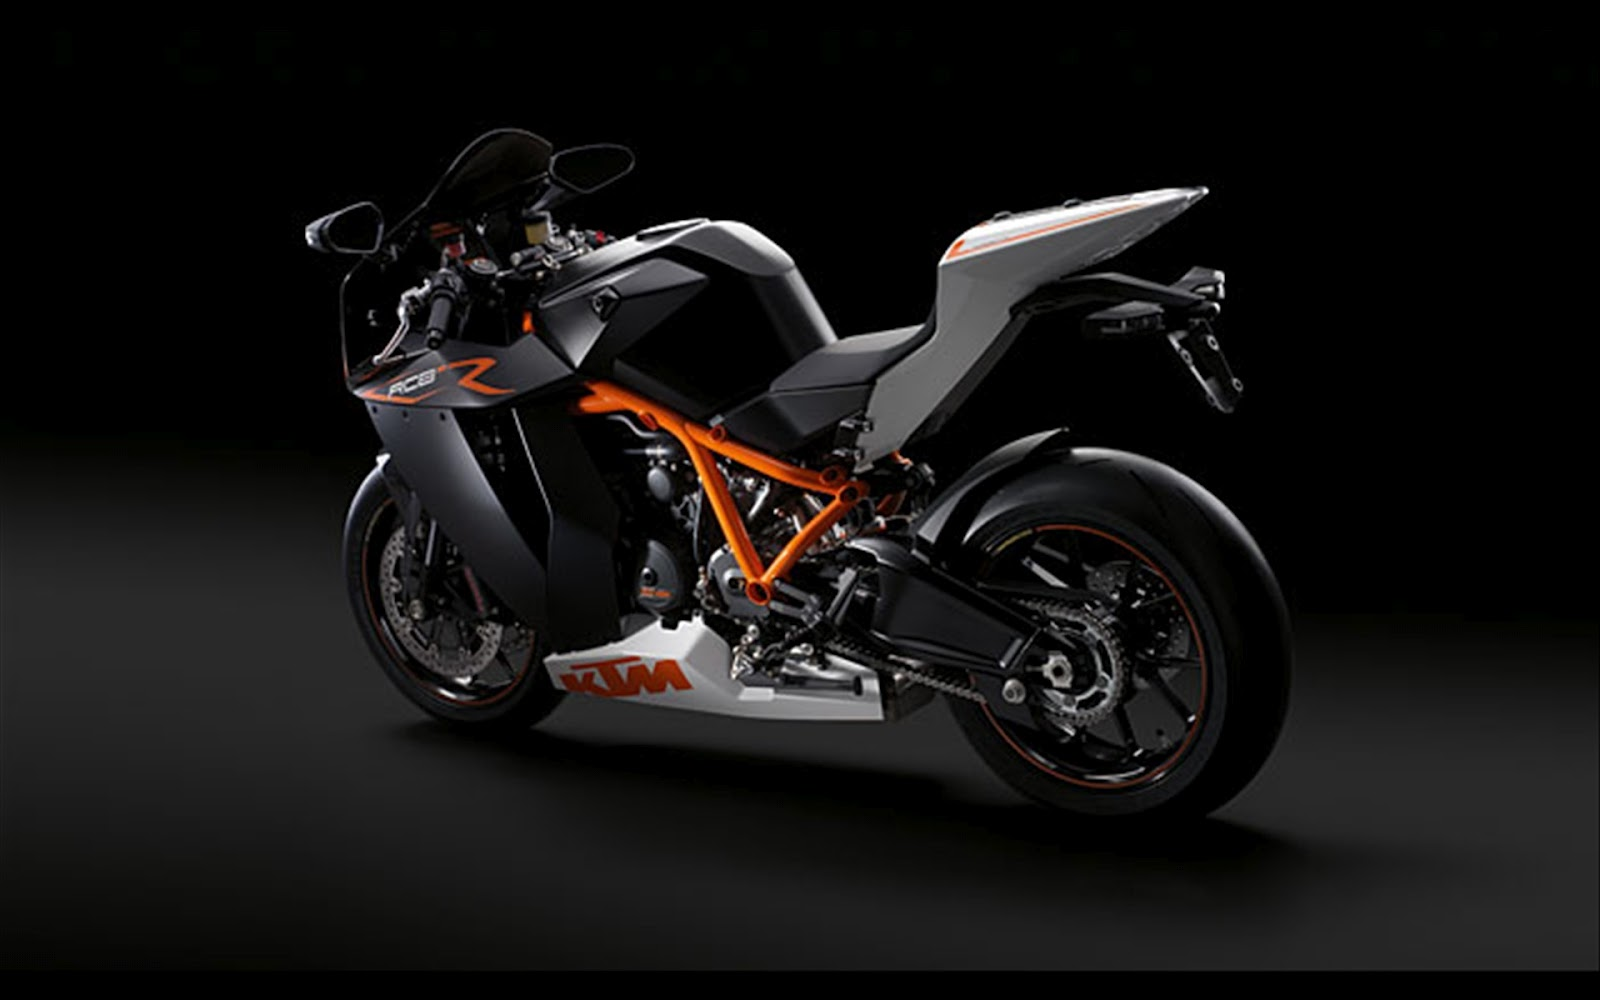 Ktm Duke 200 Hd Wallpapers All Bout Cars Ktm 1190 Rc8